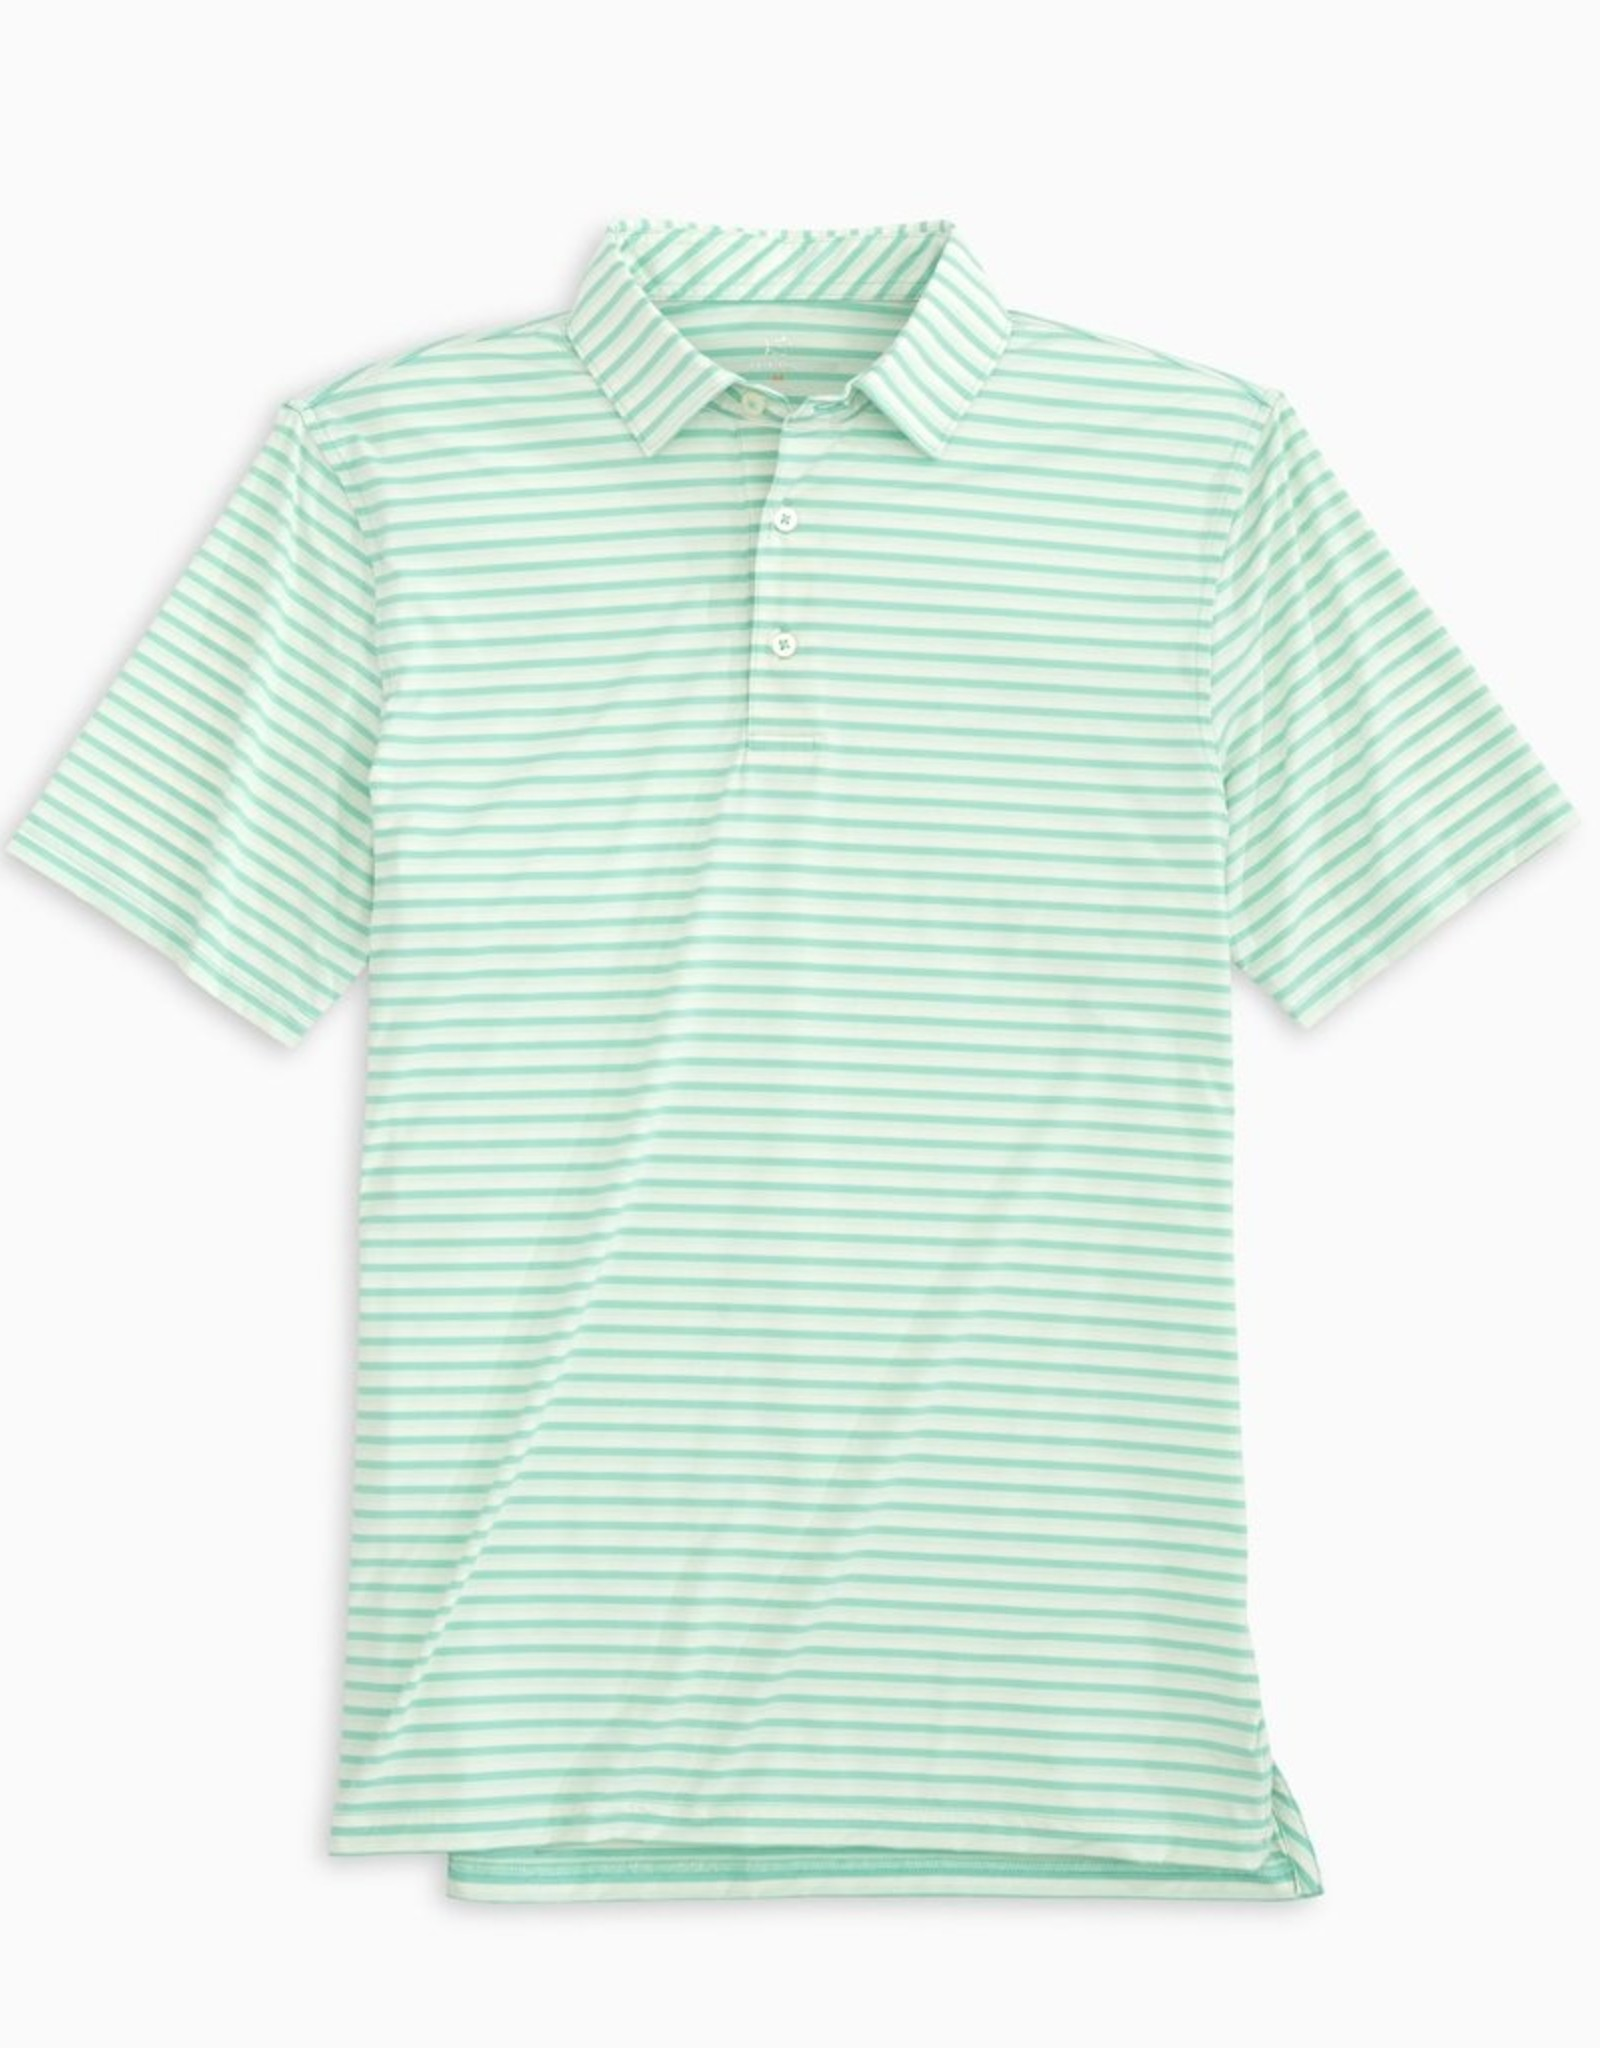 Southern Tide Waypoint Performance Polo